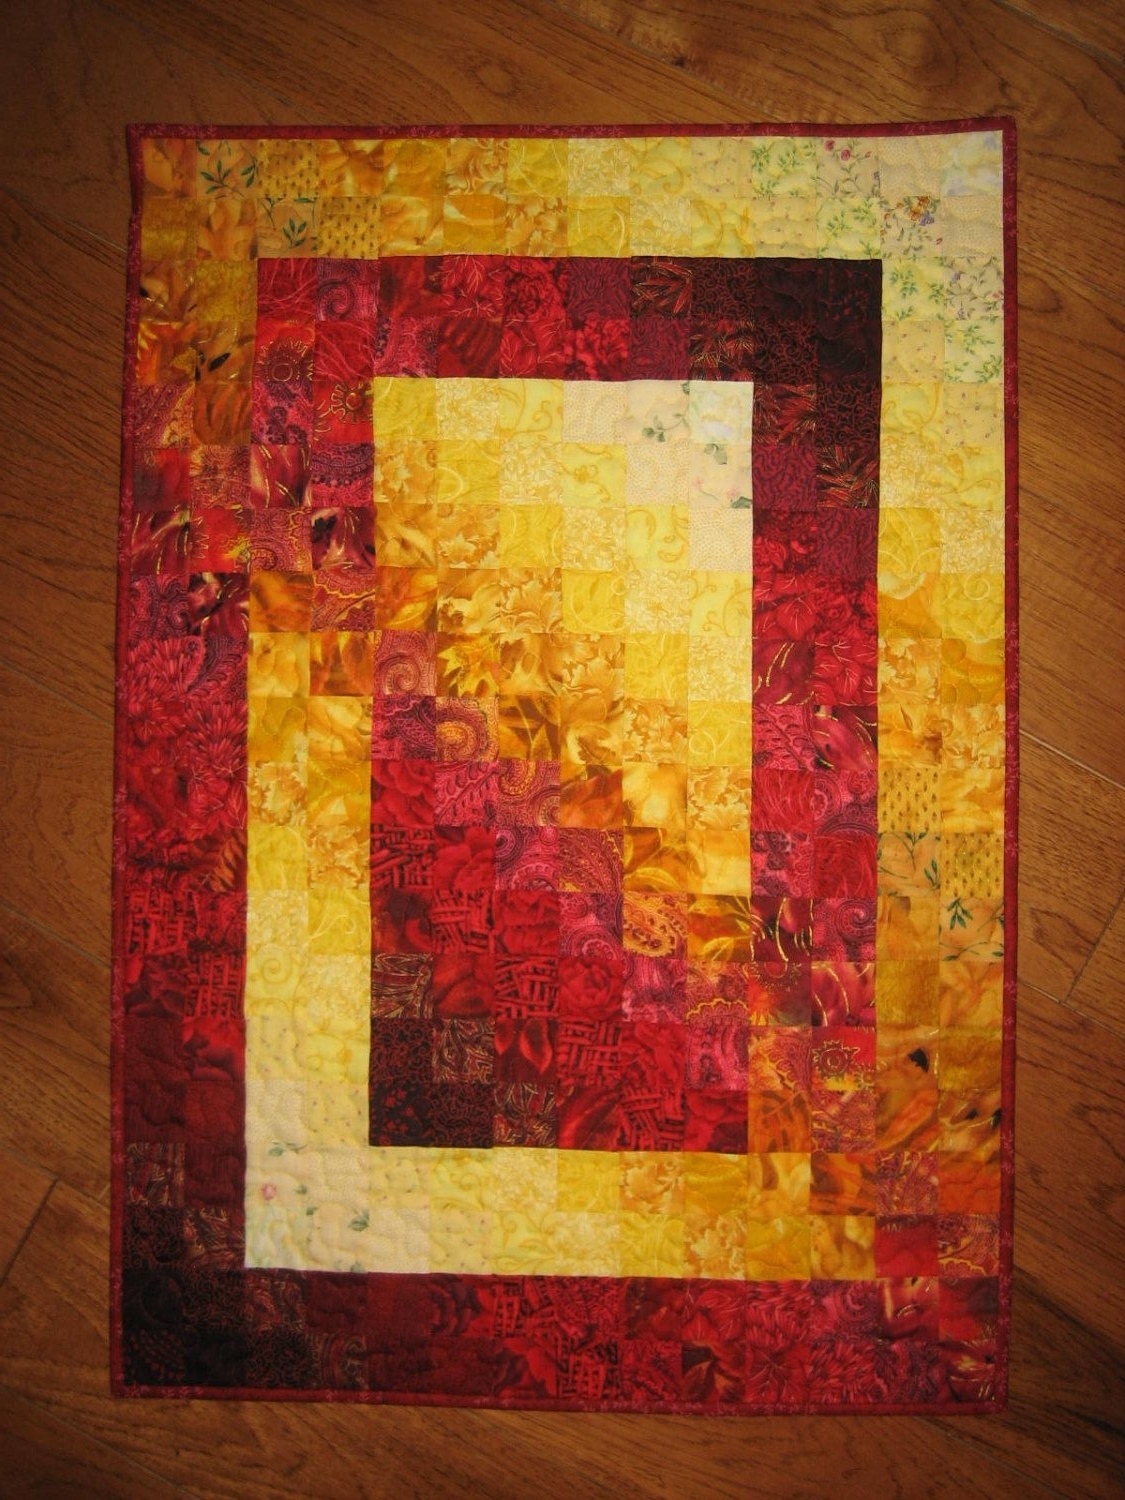 Quilt Fabric Wall Art Intended For 2017 Art Quilt, Fire Red Yellow Orange Fabric Wall Hanging Abstract (View 11 of 15)